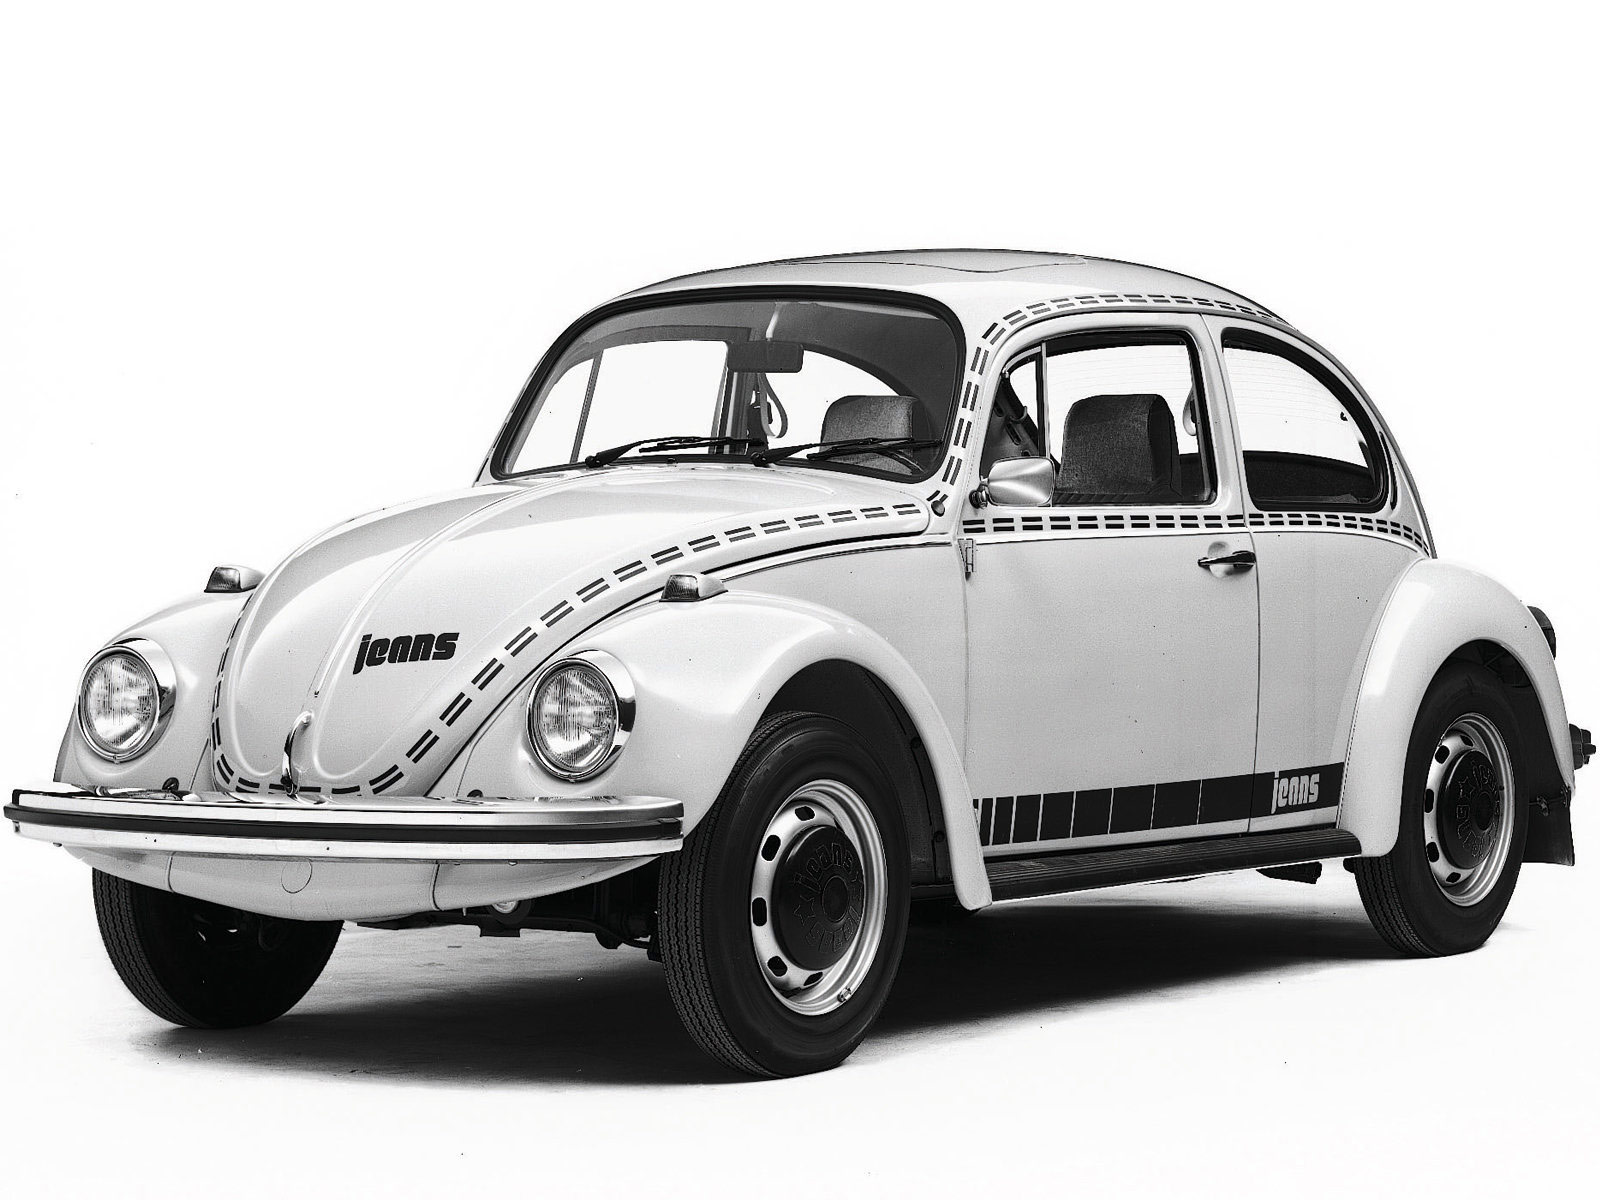 1938 VW Beetle Volkswagen car desktop wallpaper 1600x1200